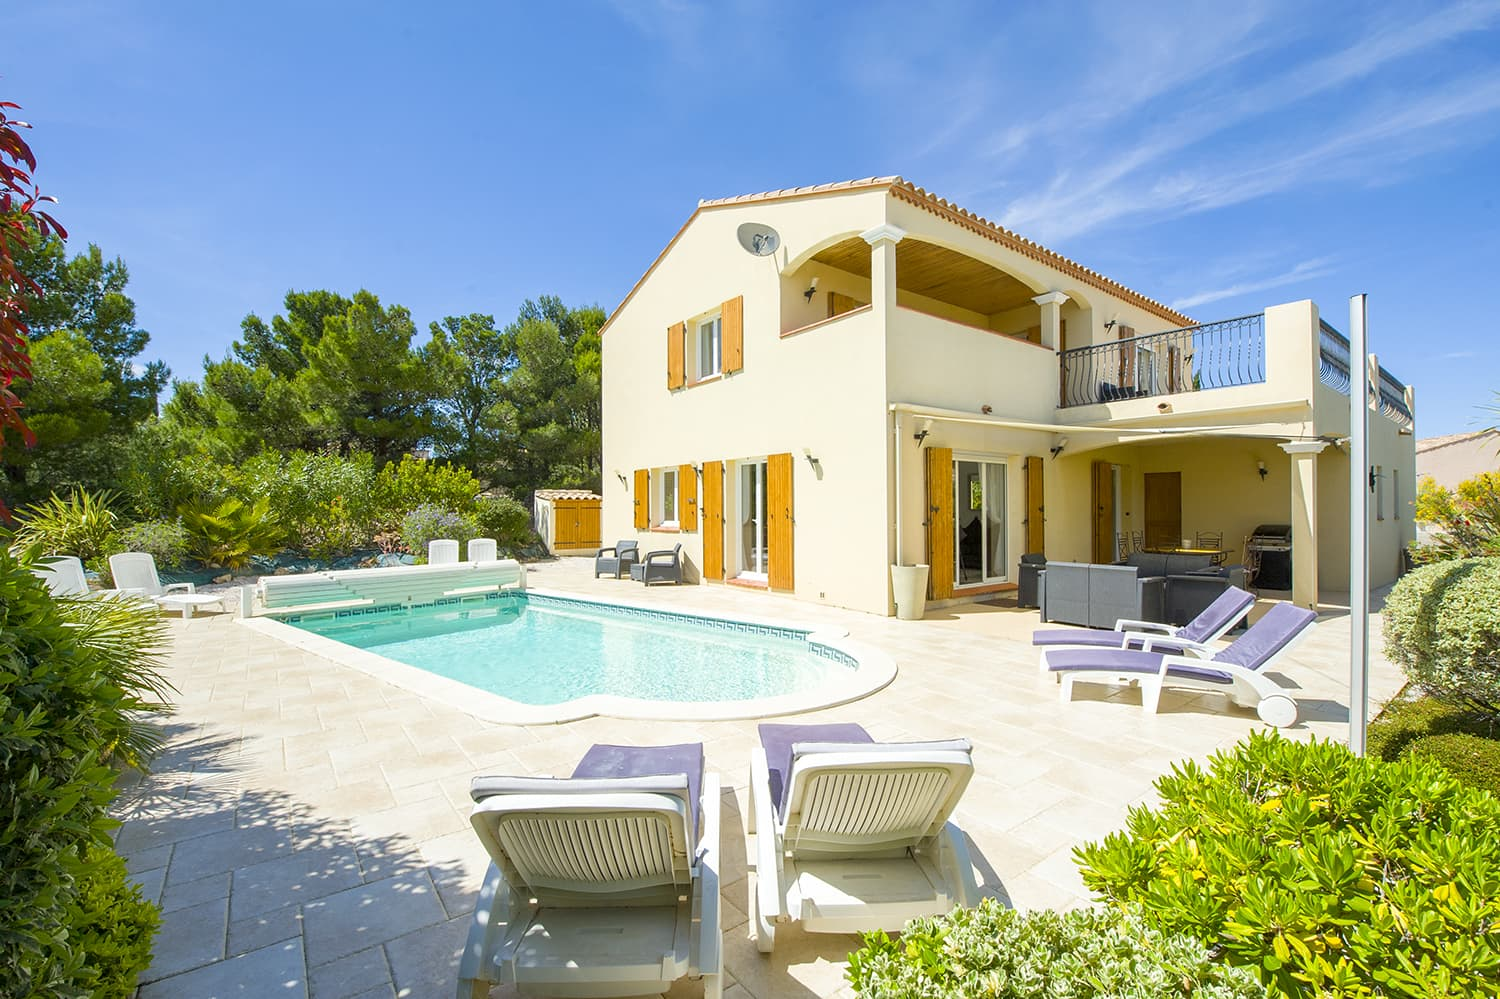 Holiday villa in Fitou with private, heated pool